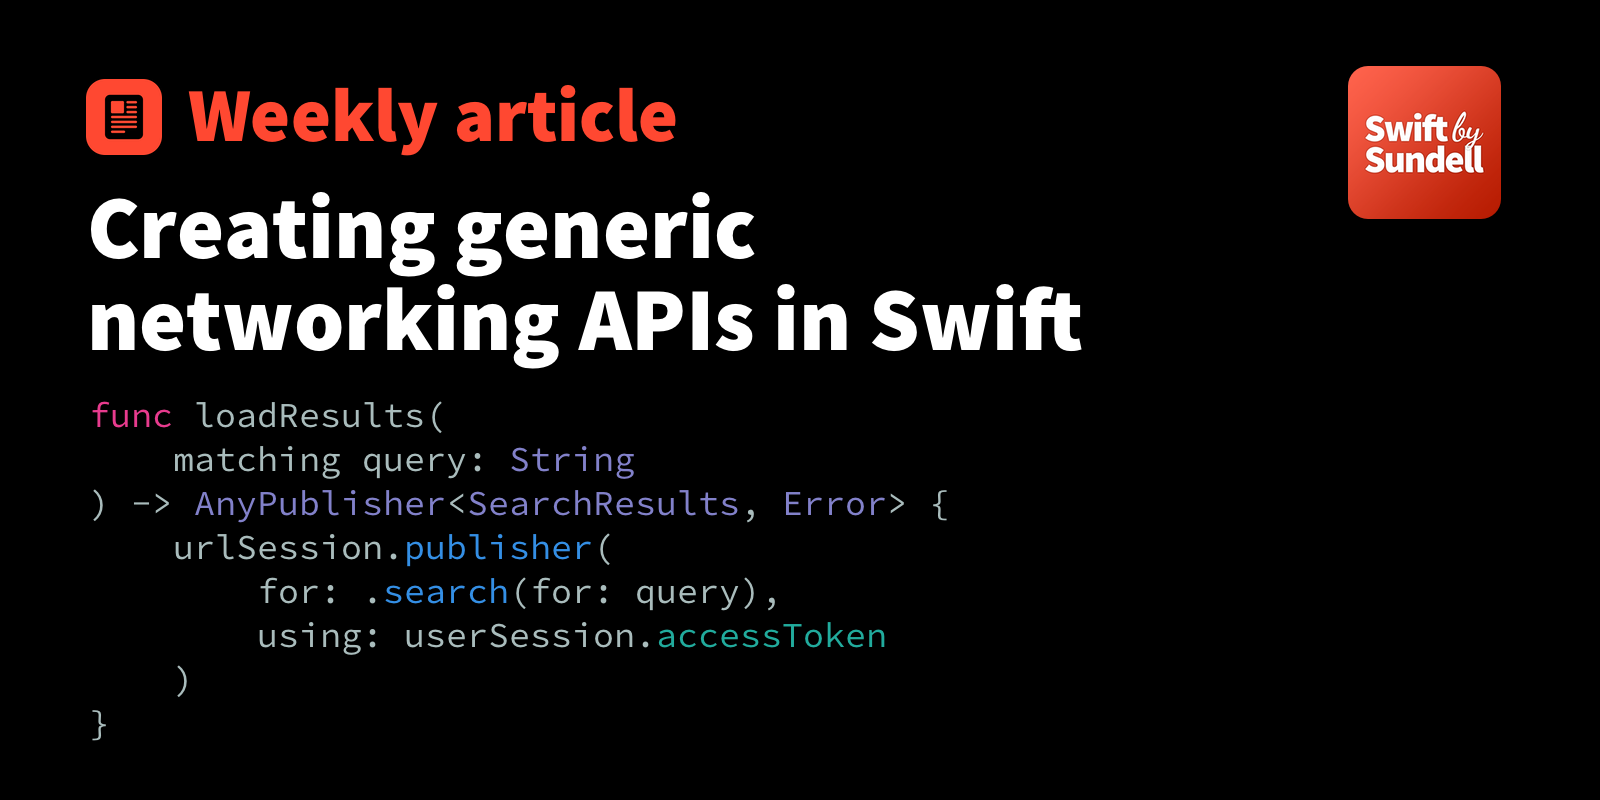 Creating generic networking APIs in Swift | Swift by Sundell